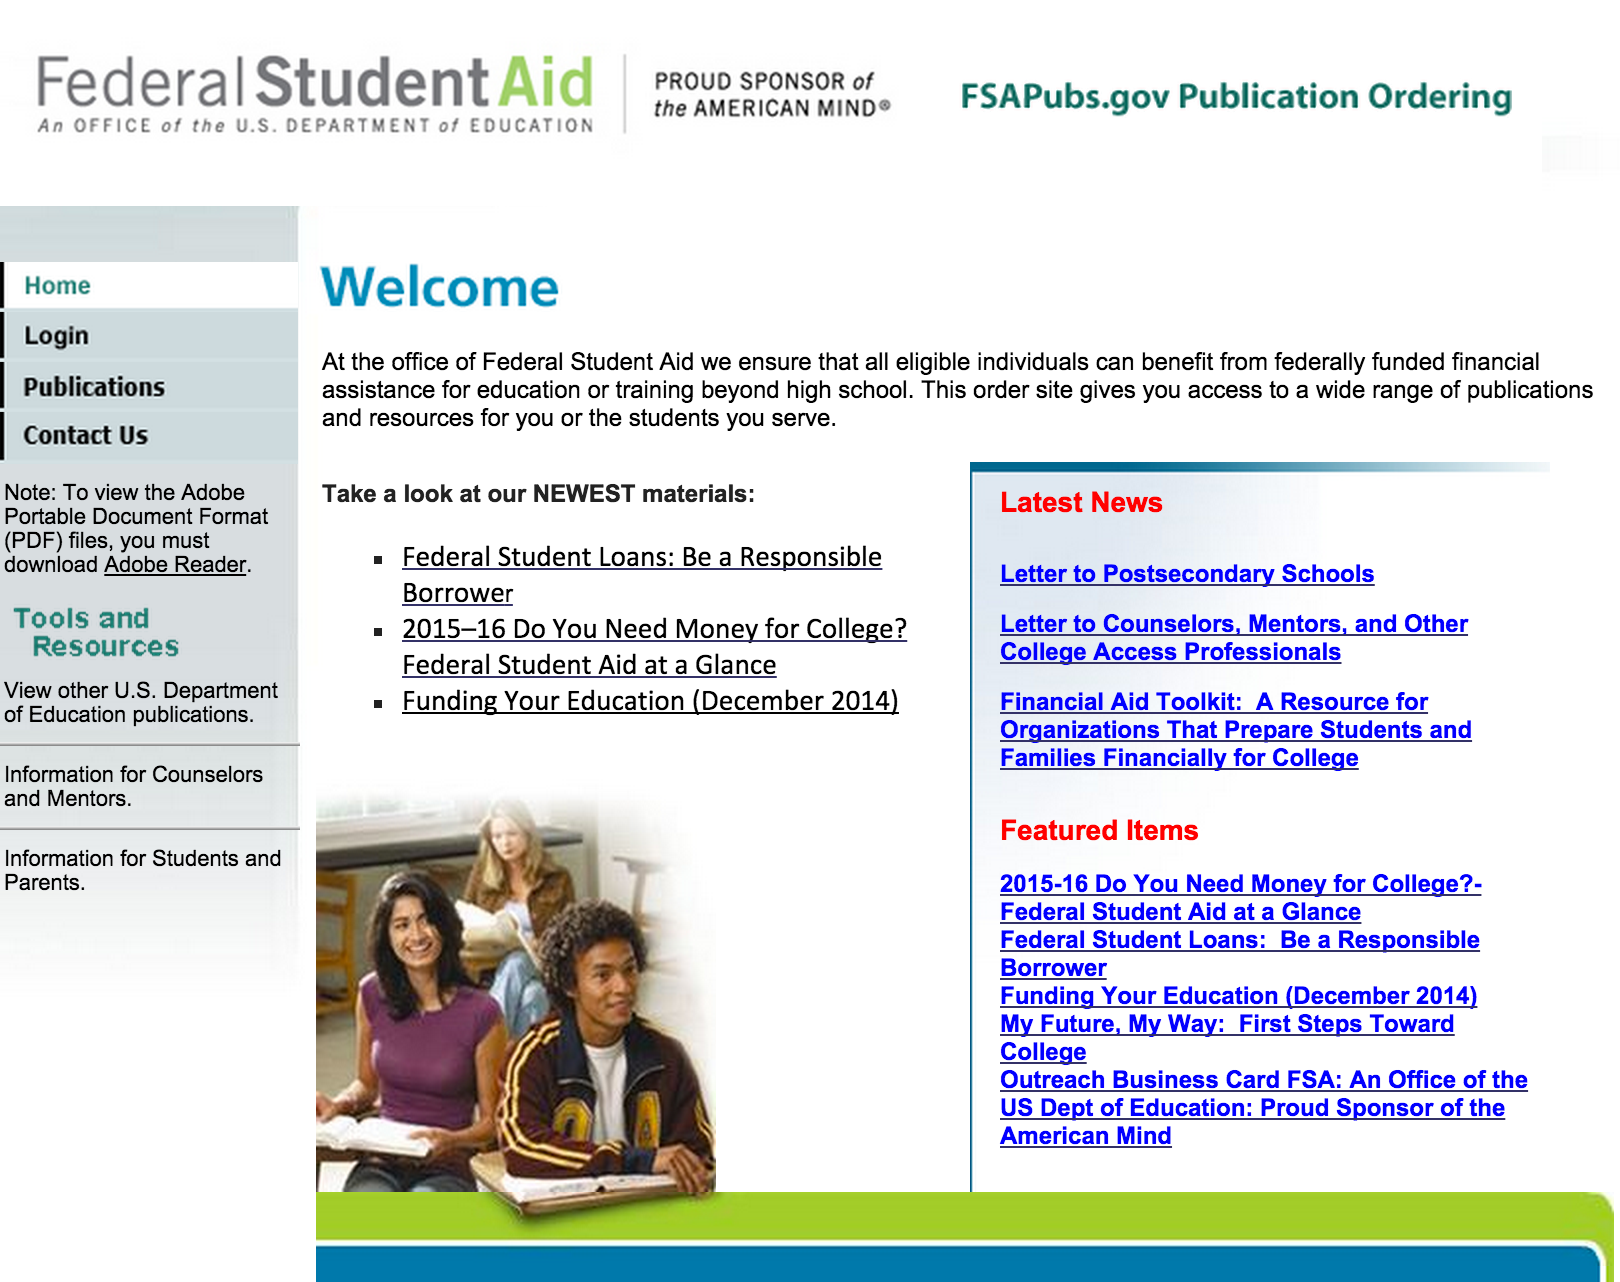 Schools May Order Bulk Quantities Of The Fafsa On The Web